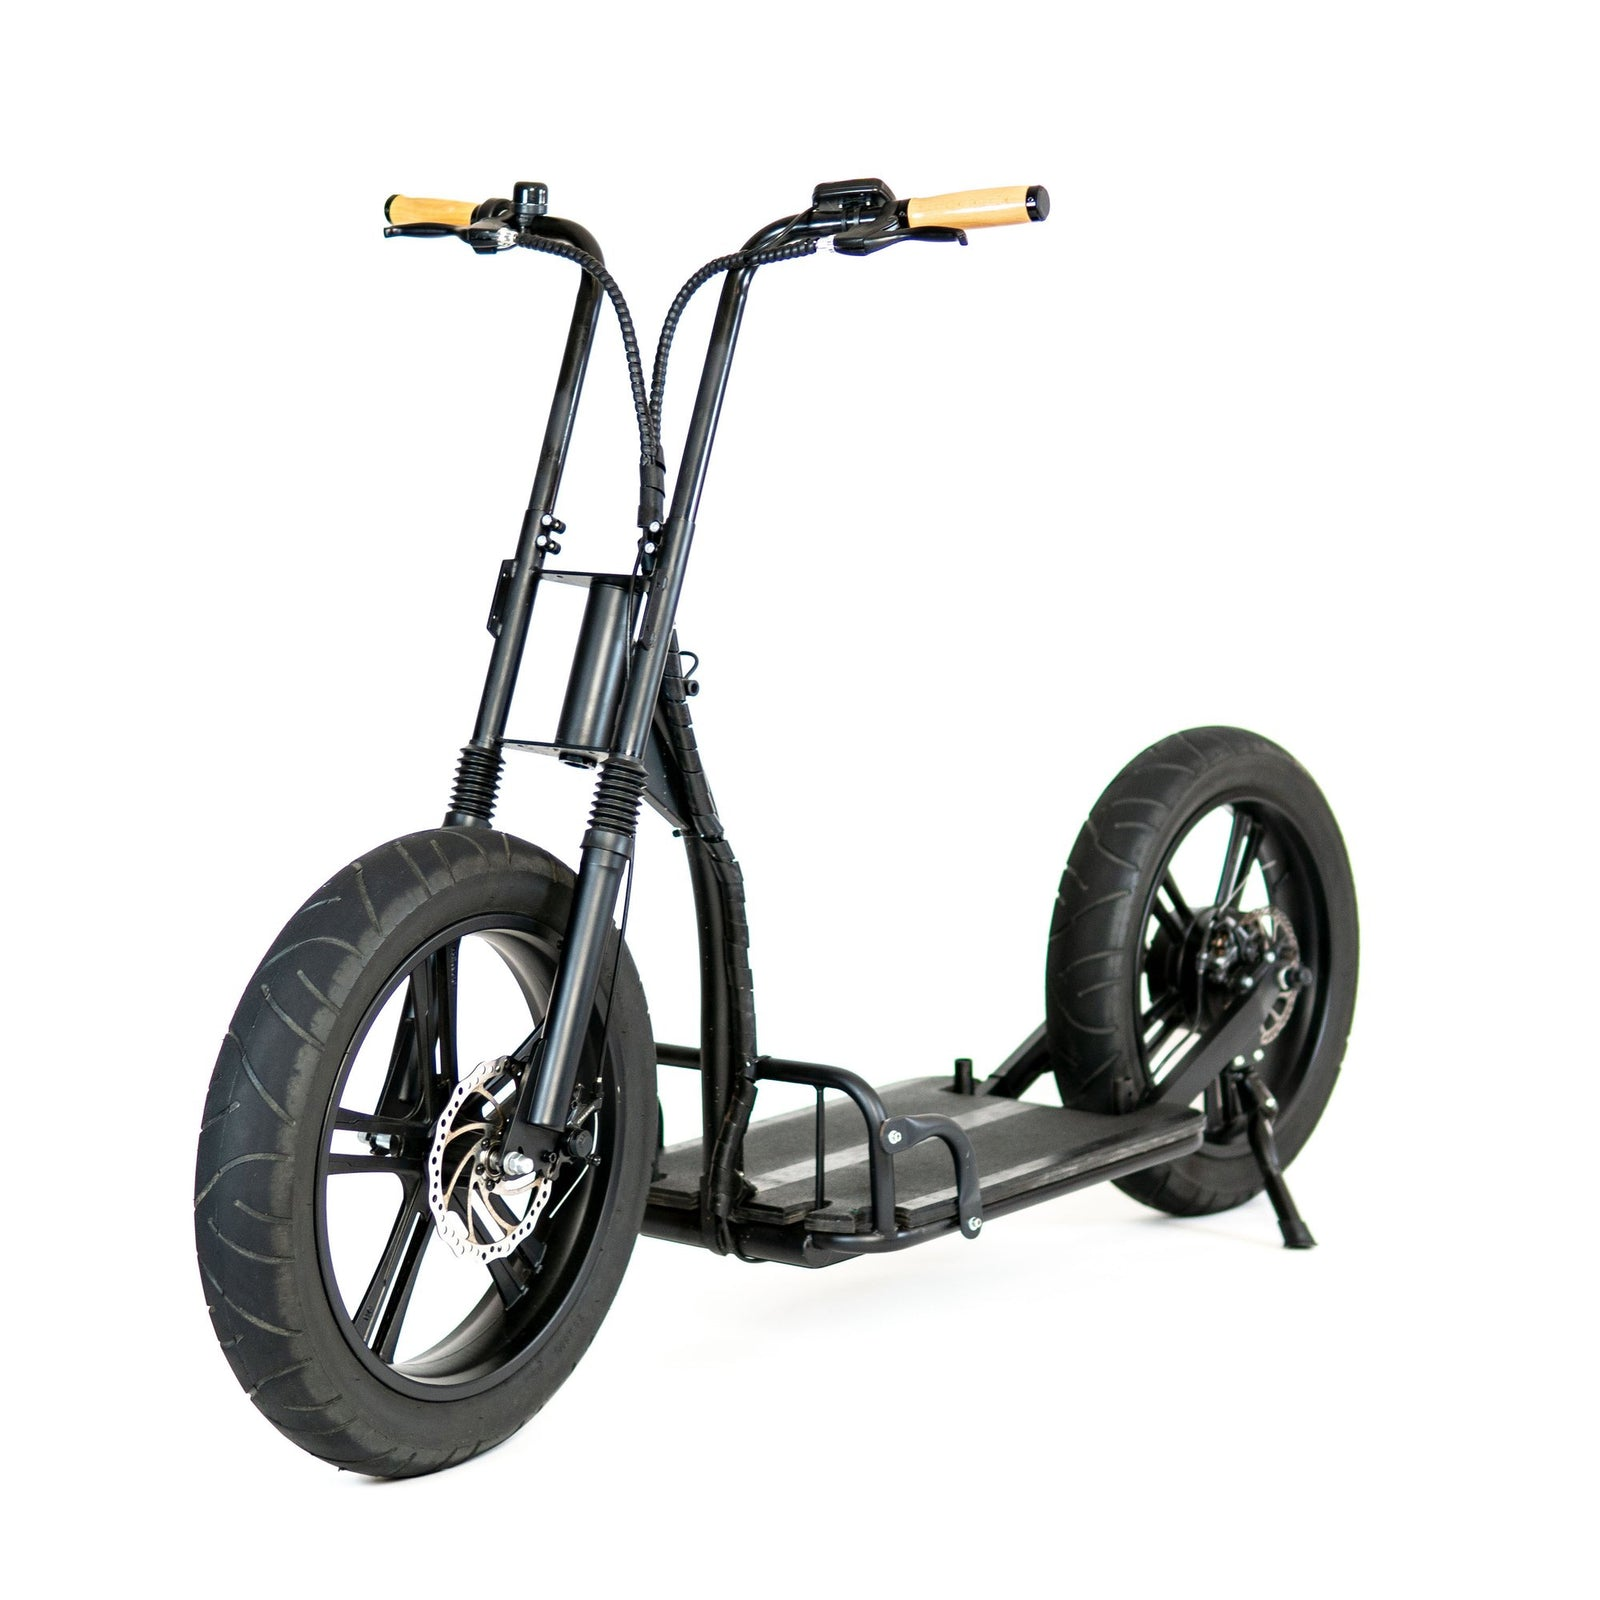 Urban Drivestyle / Electric bikes for work, fun and family